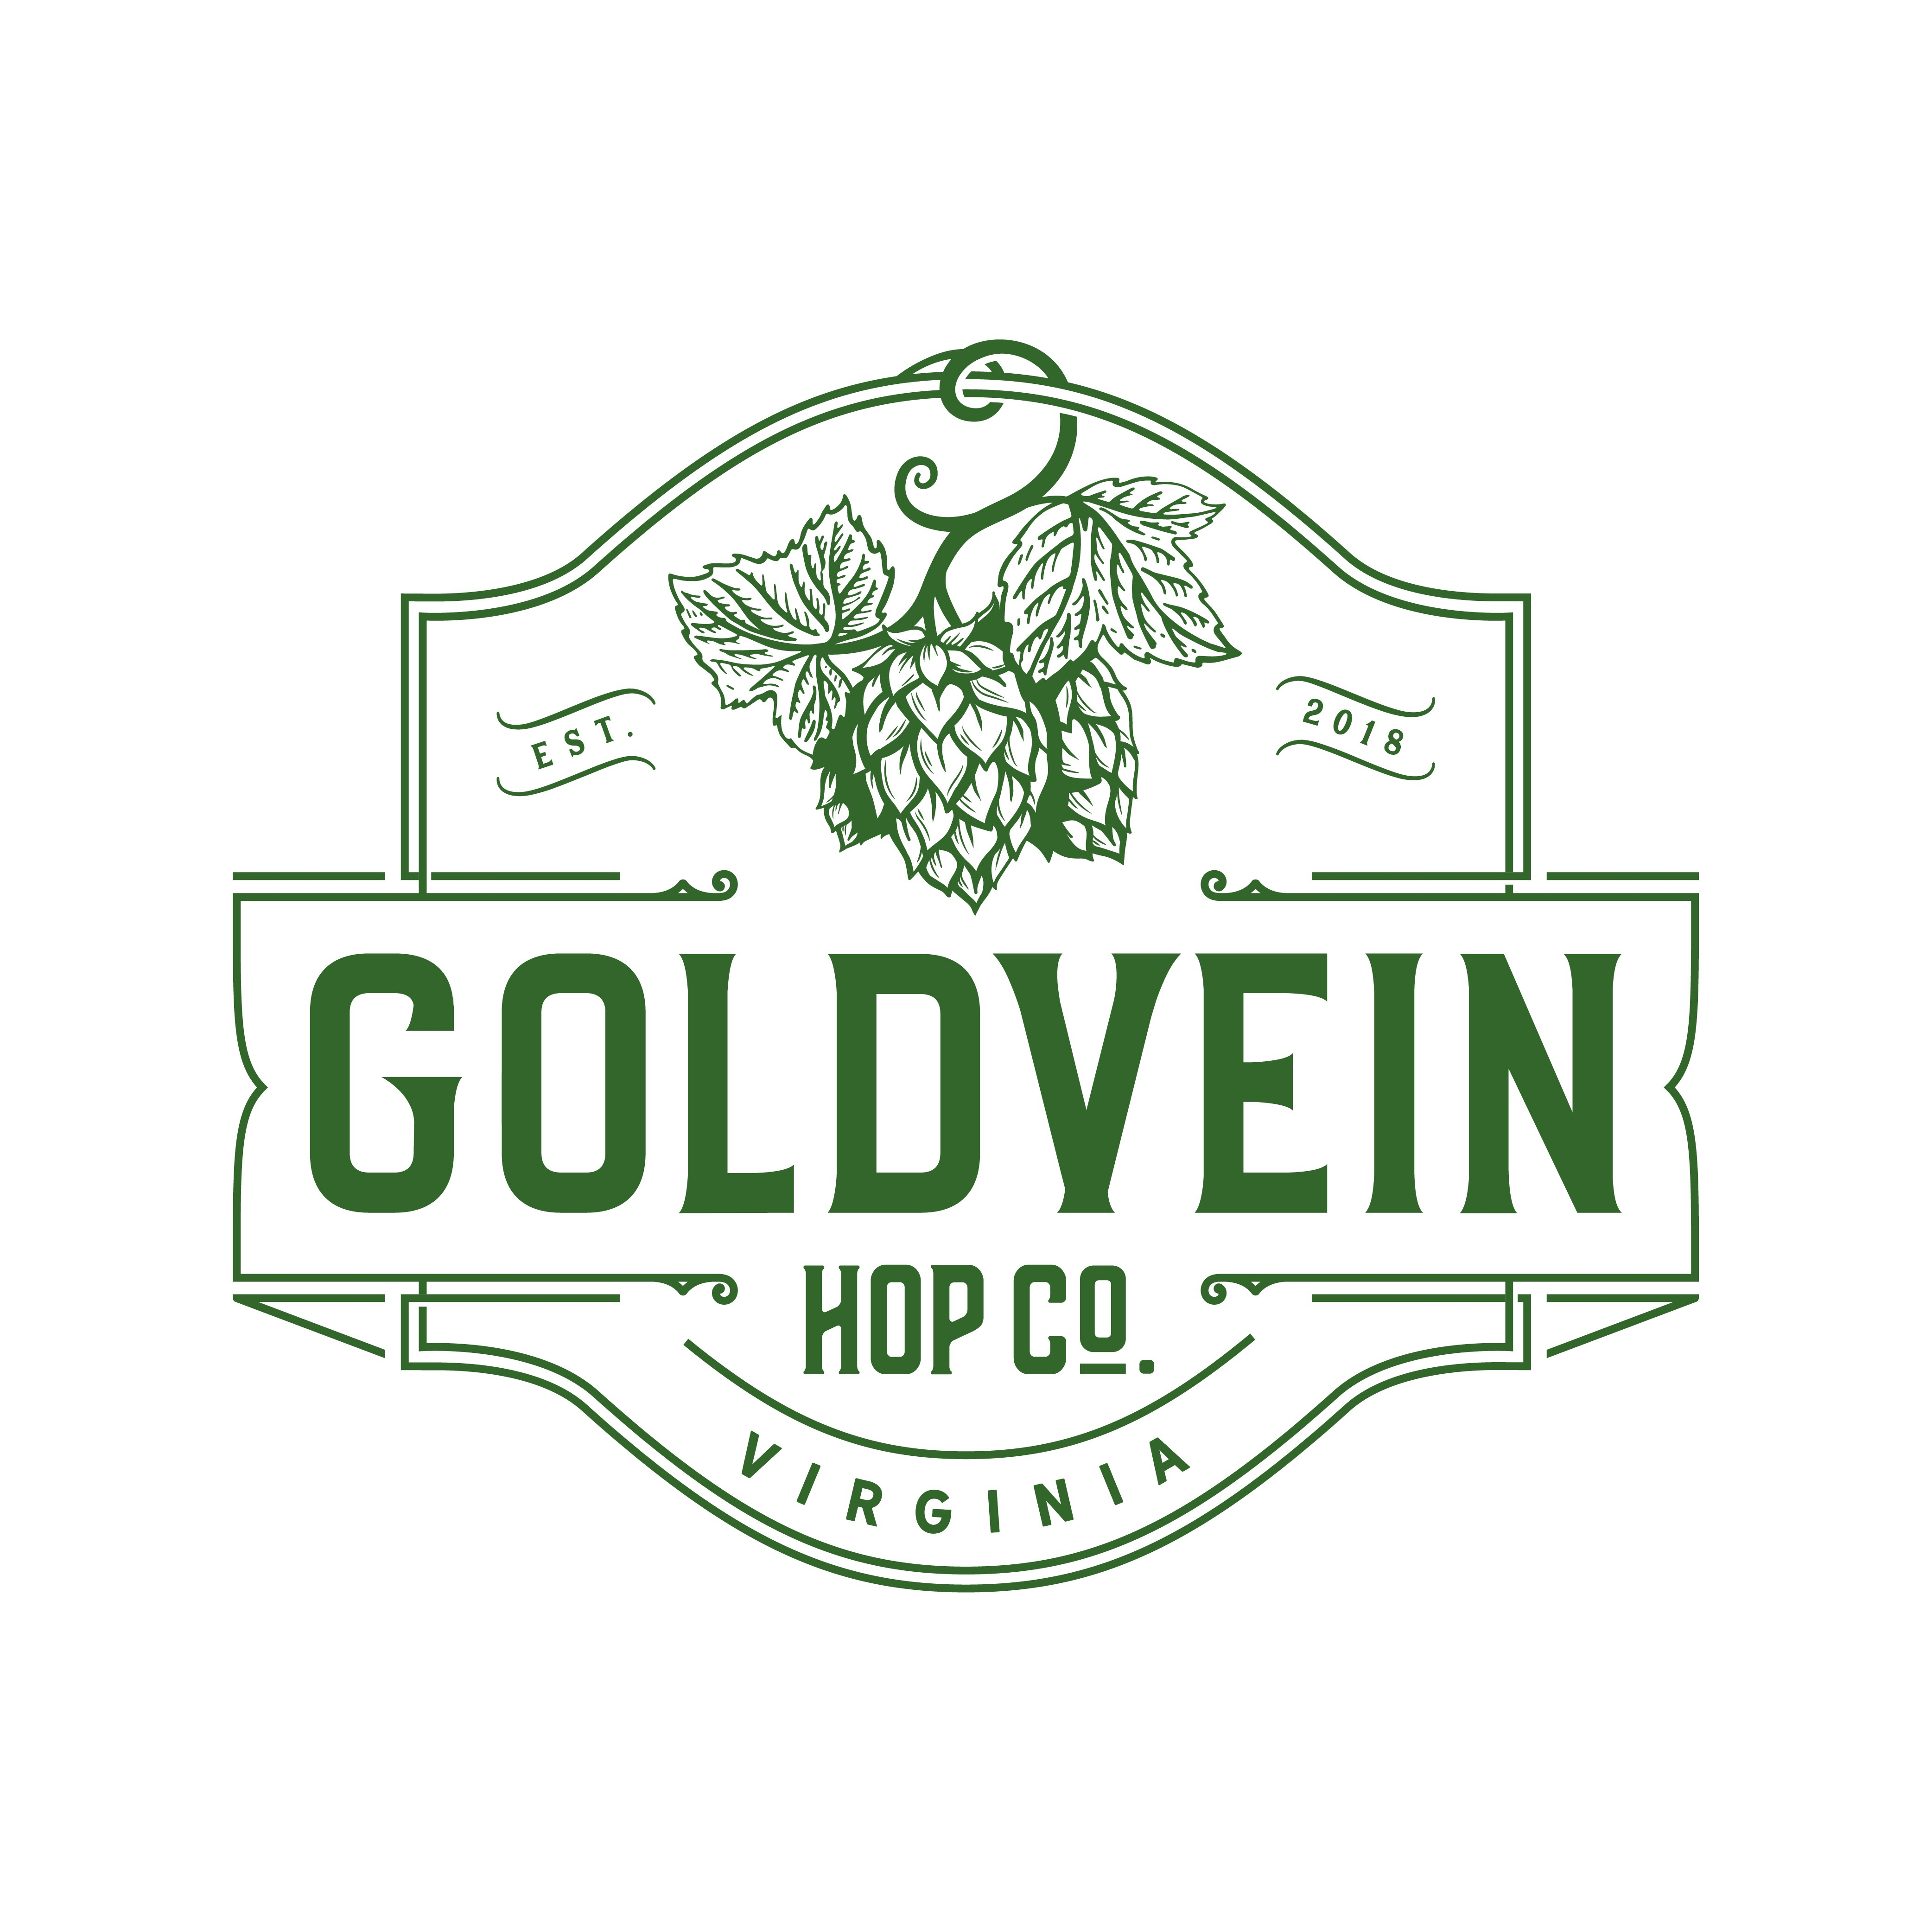 New hop grower looking for vintage logo